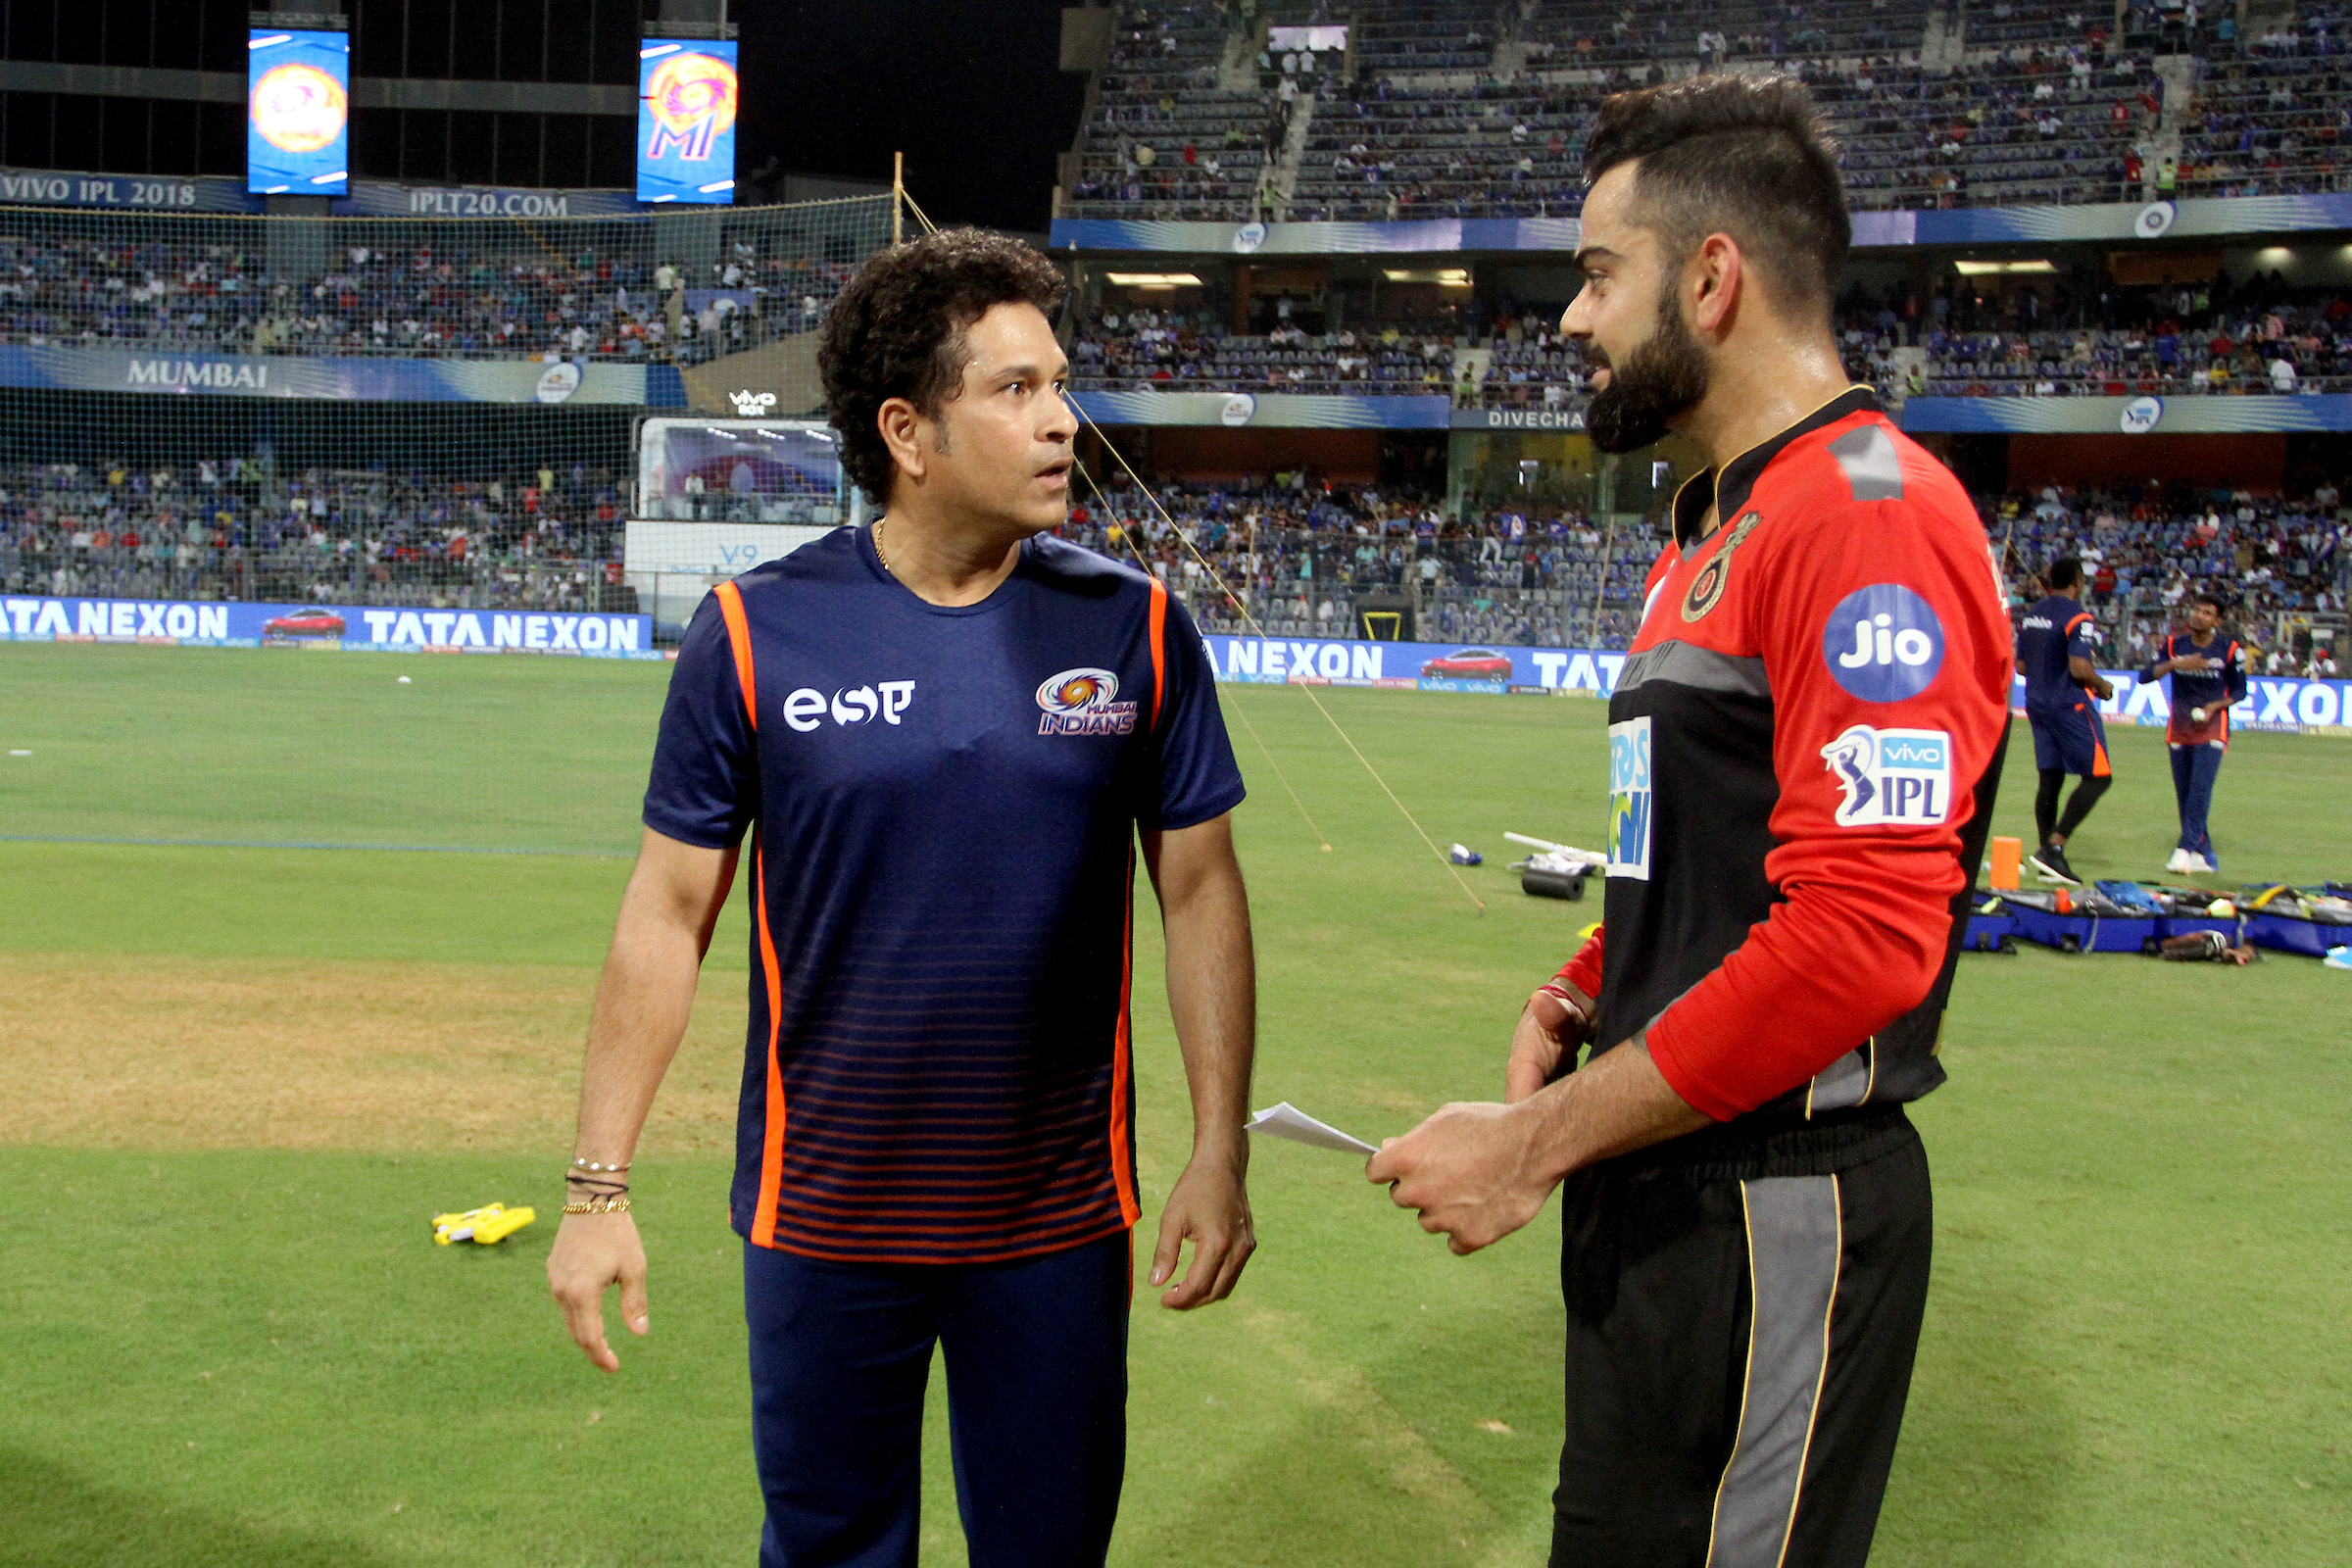 Mumbai Indians icon Sachin Tendulkar interacts with RCB skipper Virat Kohli ahead of the match on Tuesday. Photo: Sportzpics